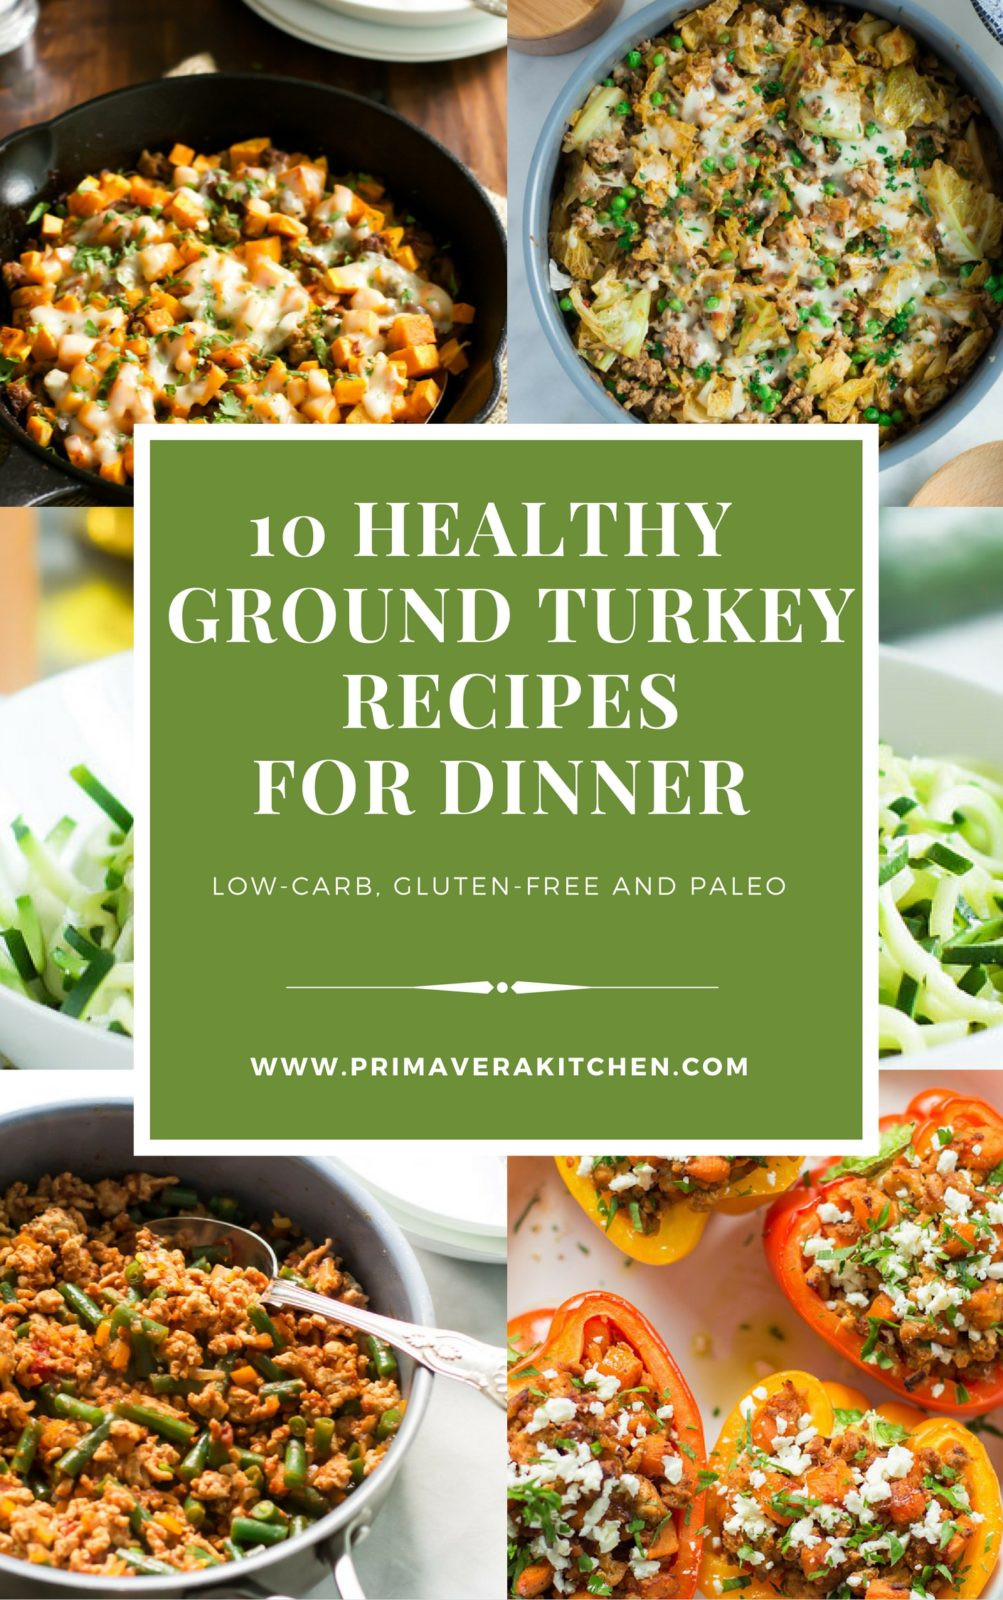 Healthy Dishes With Ground Turkey  10 Healthy Ground Turkey Recipes for Dinner Primavera